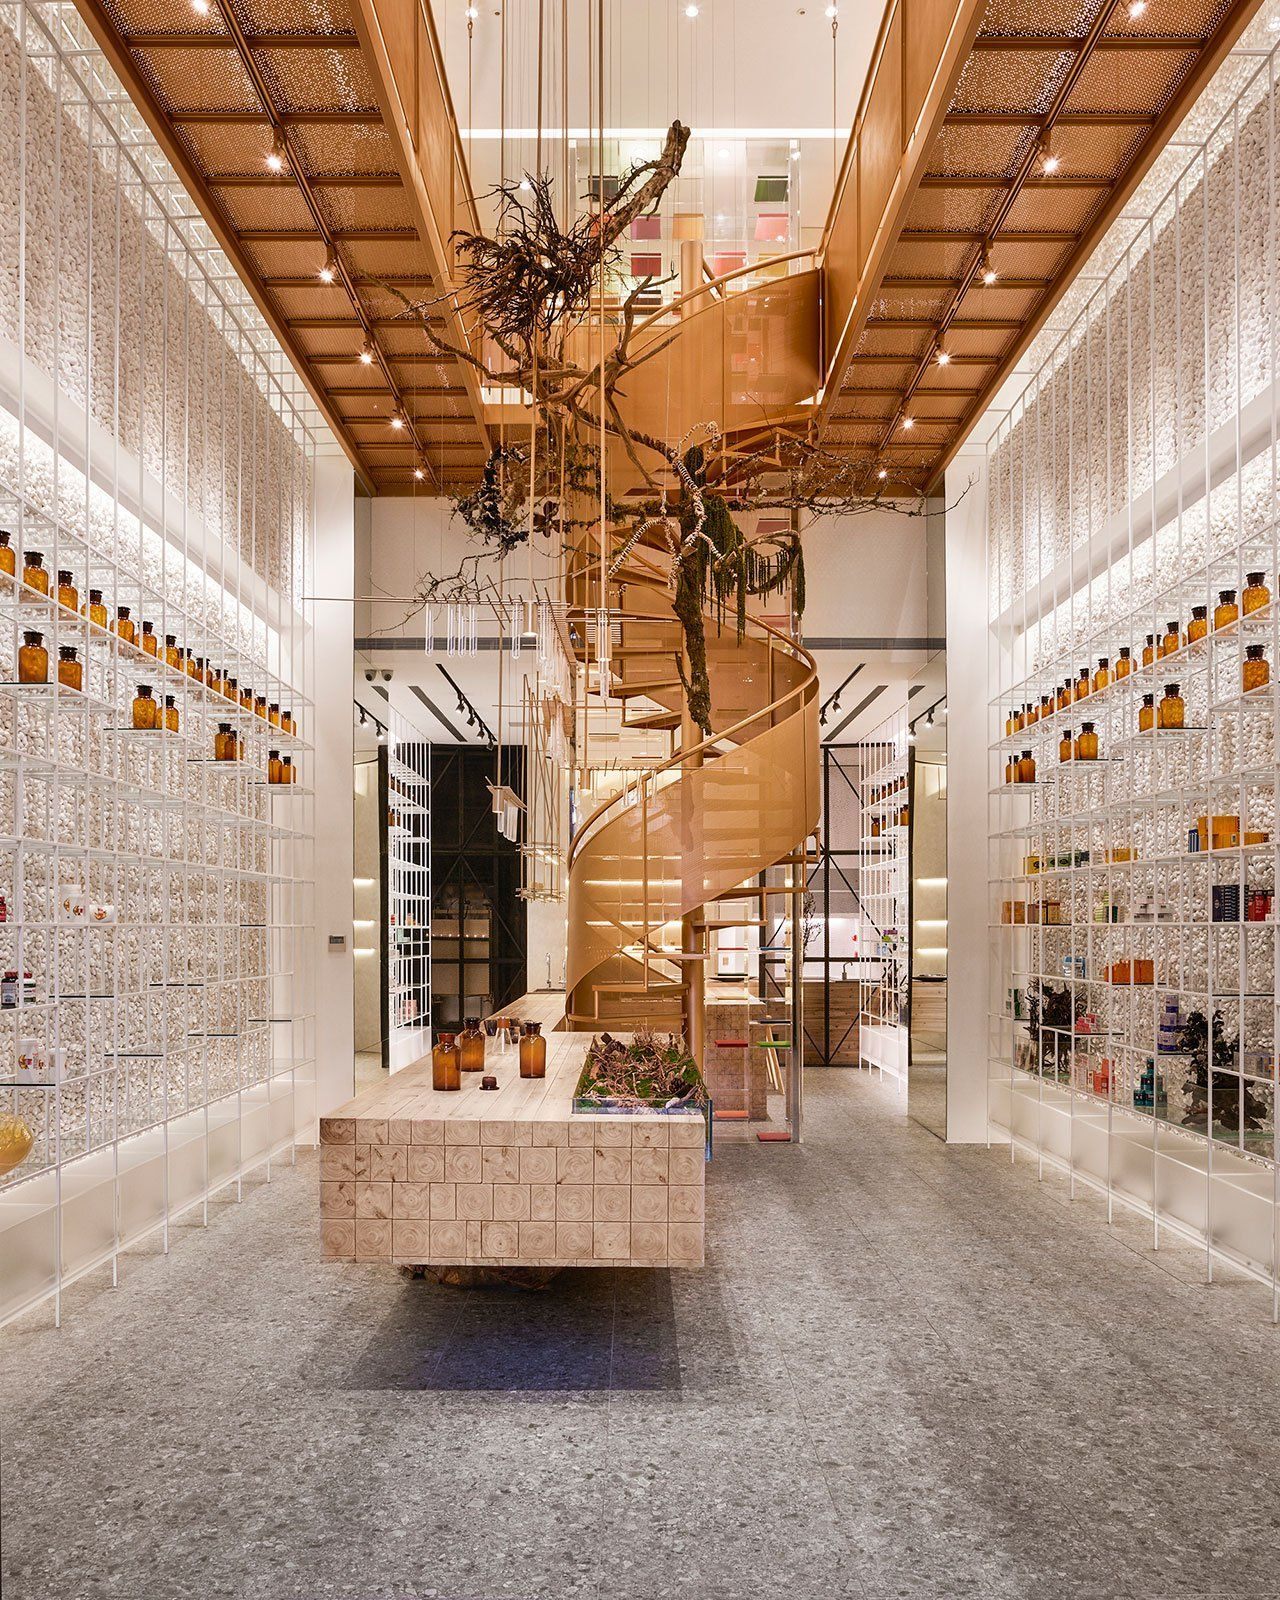 Feeling better molecure pharmacy in taiwan by waterfrom design